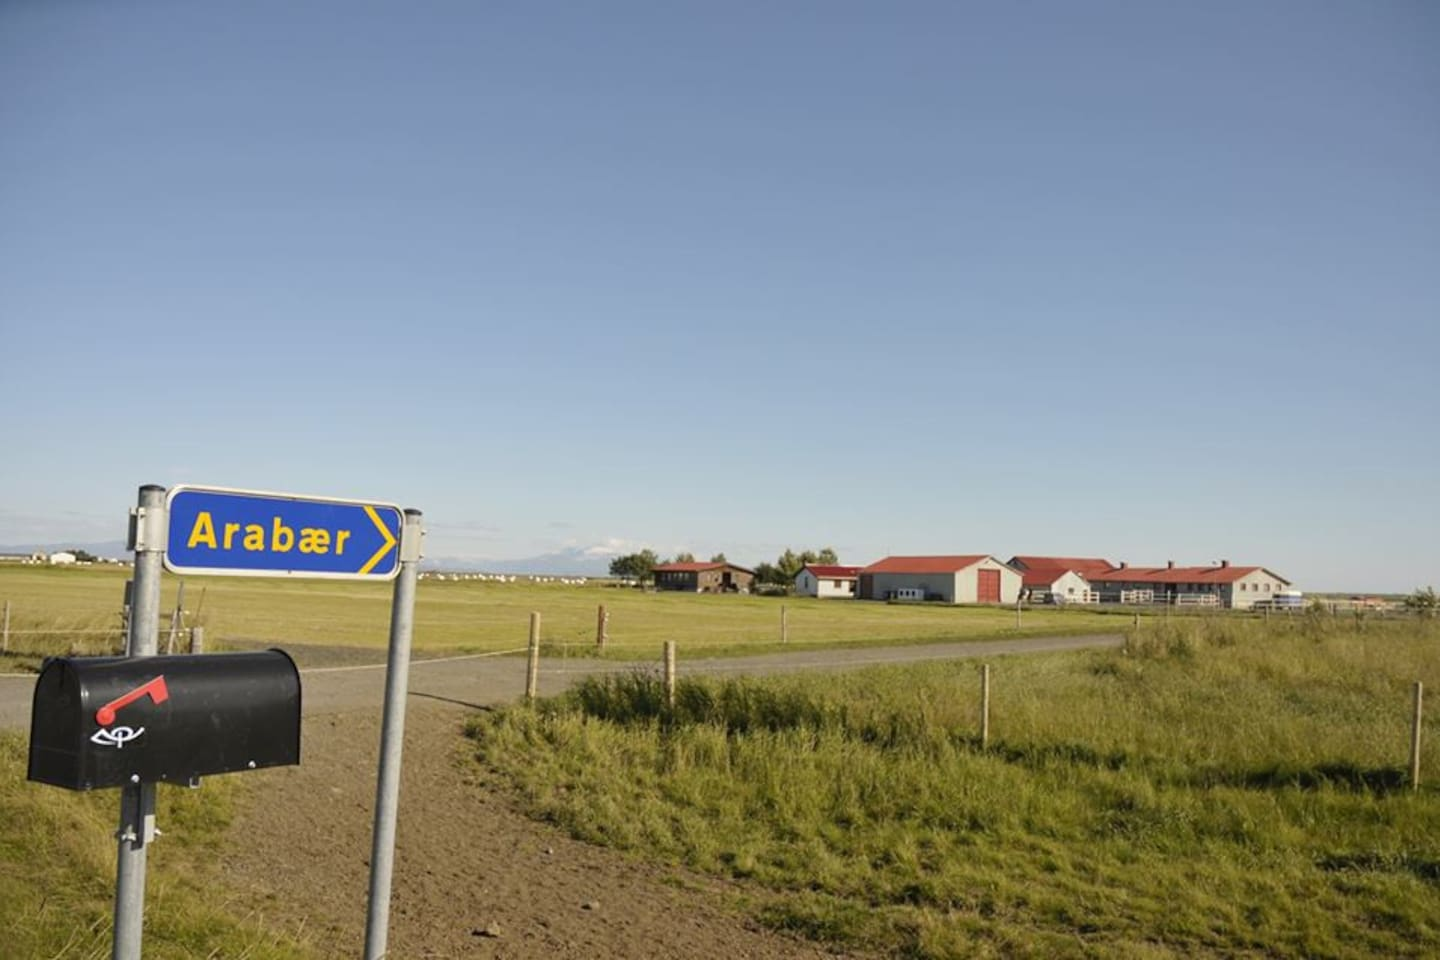 Arabaer Farm from the road - photo - Vera van Praag Sigaar